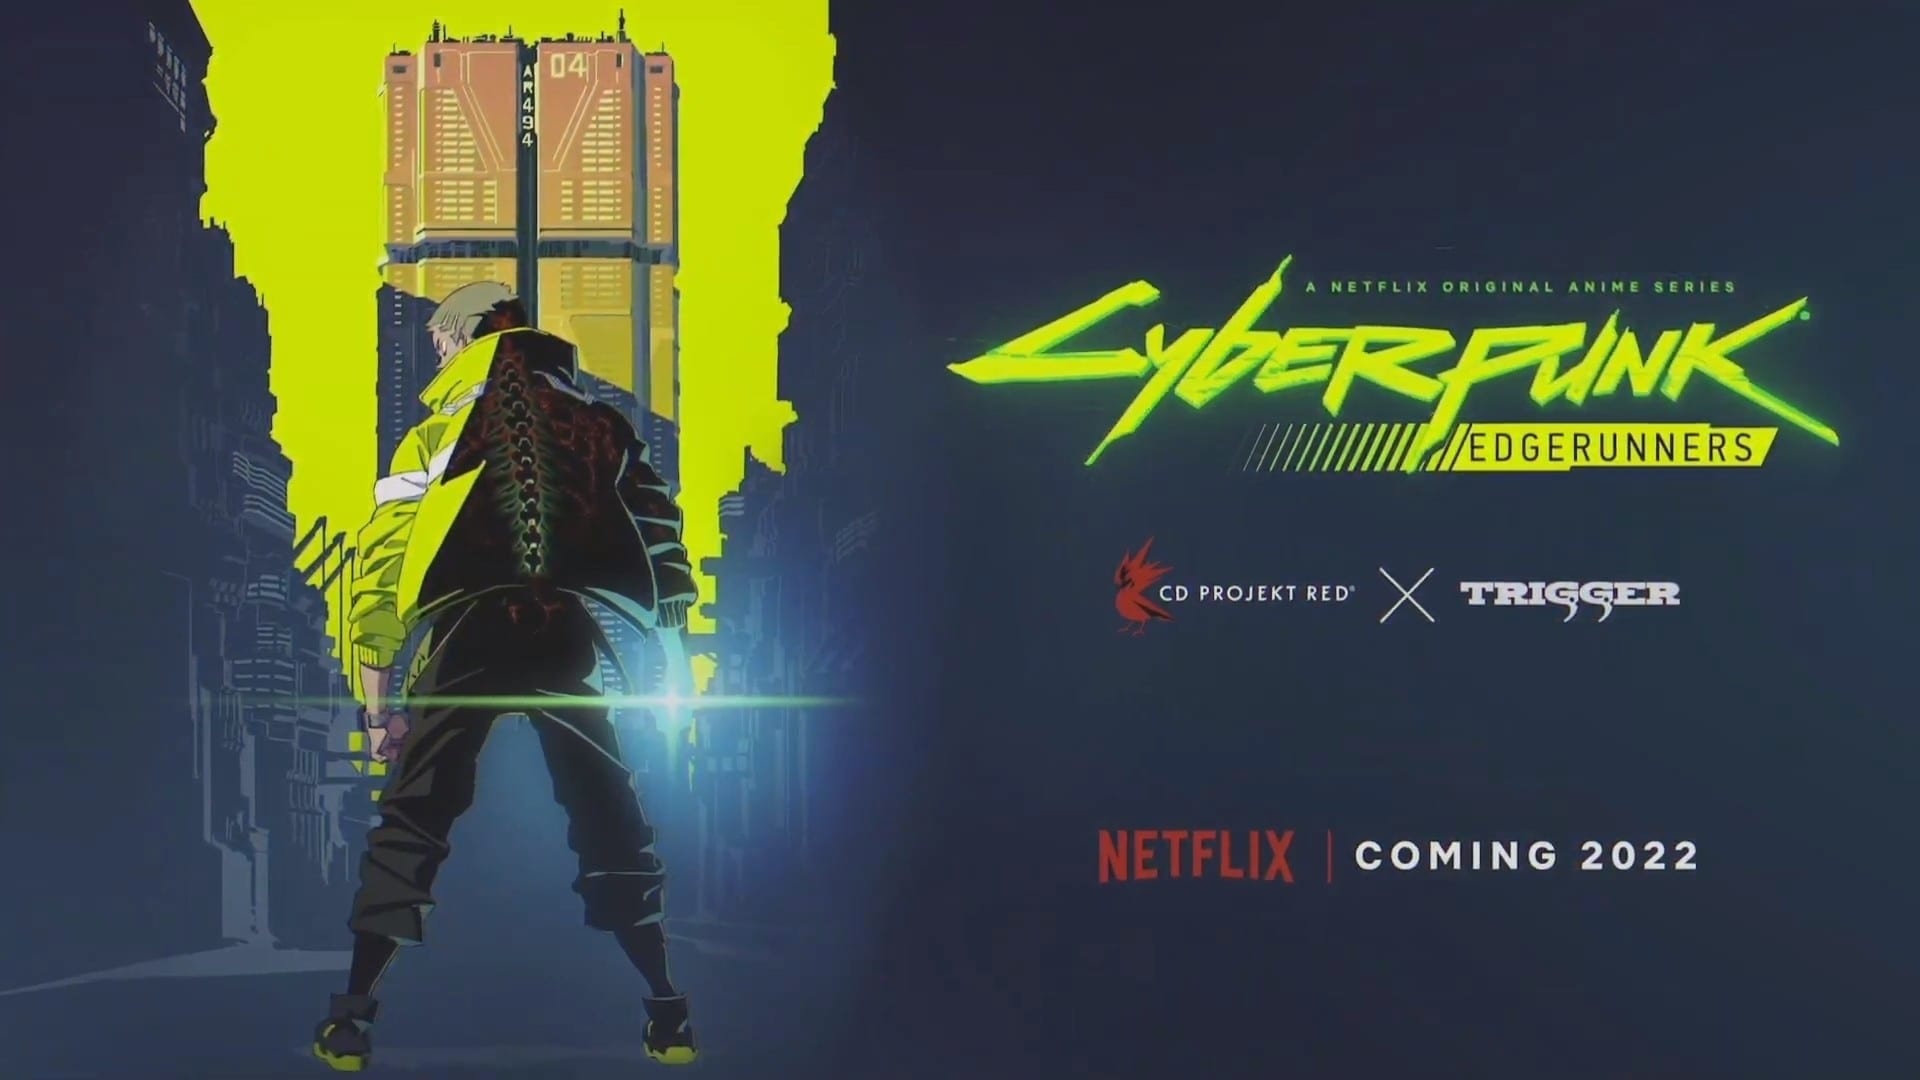 CD Projekt RED, Studio Trigger & Netflix Come Together For Global Anime Cyberpunk: Edgerunners